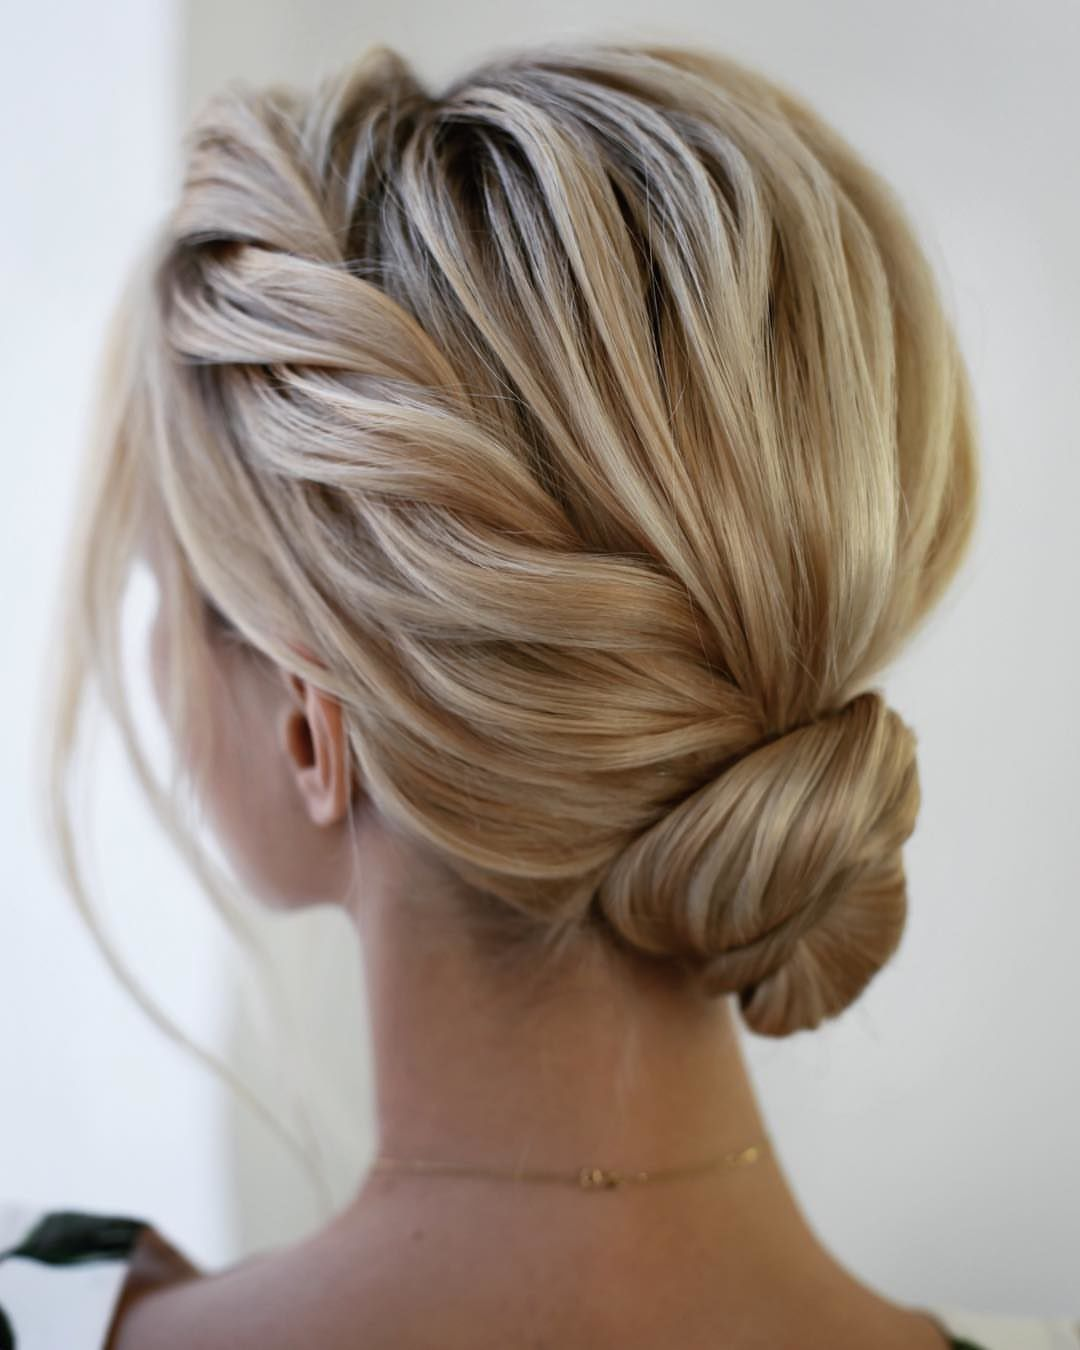 Low Bun Side Braid Short Hair Updo Prom Hairstyles For Short Hair Homecoming Hairstyles